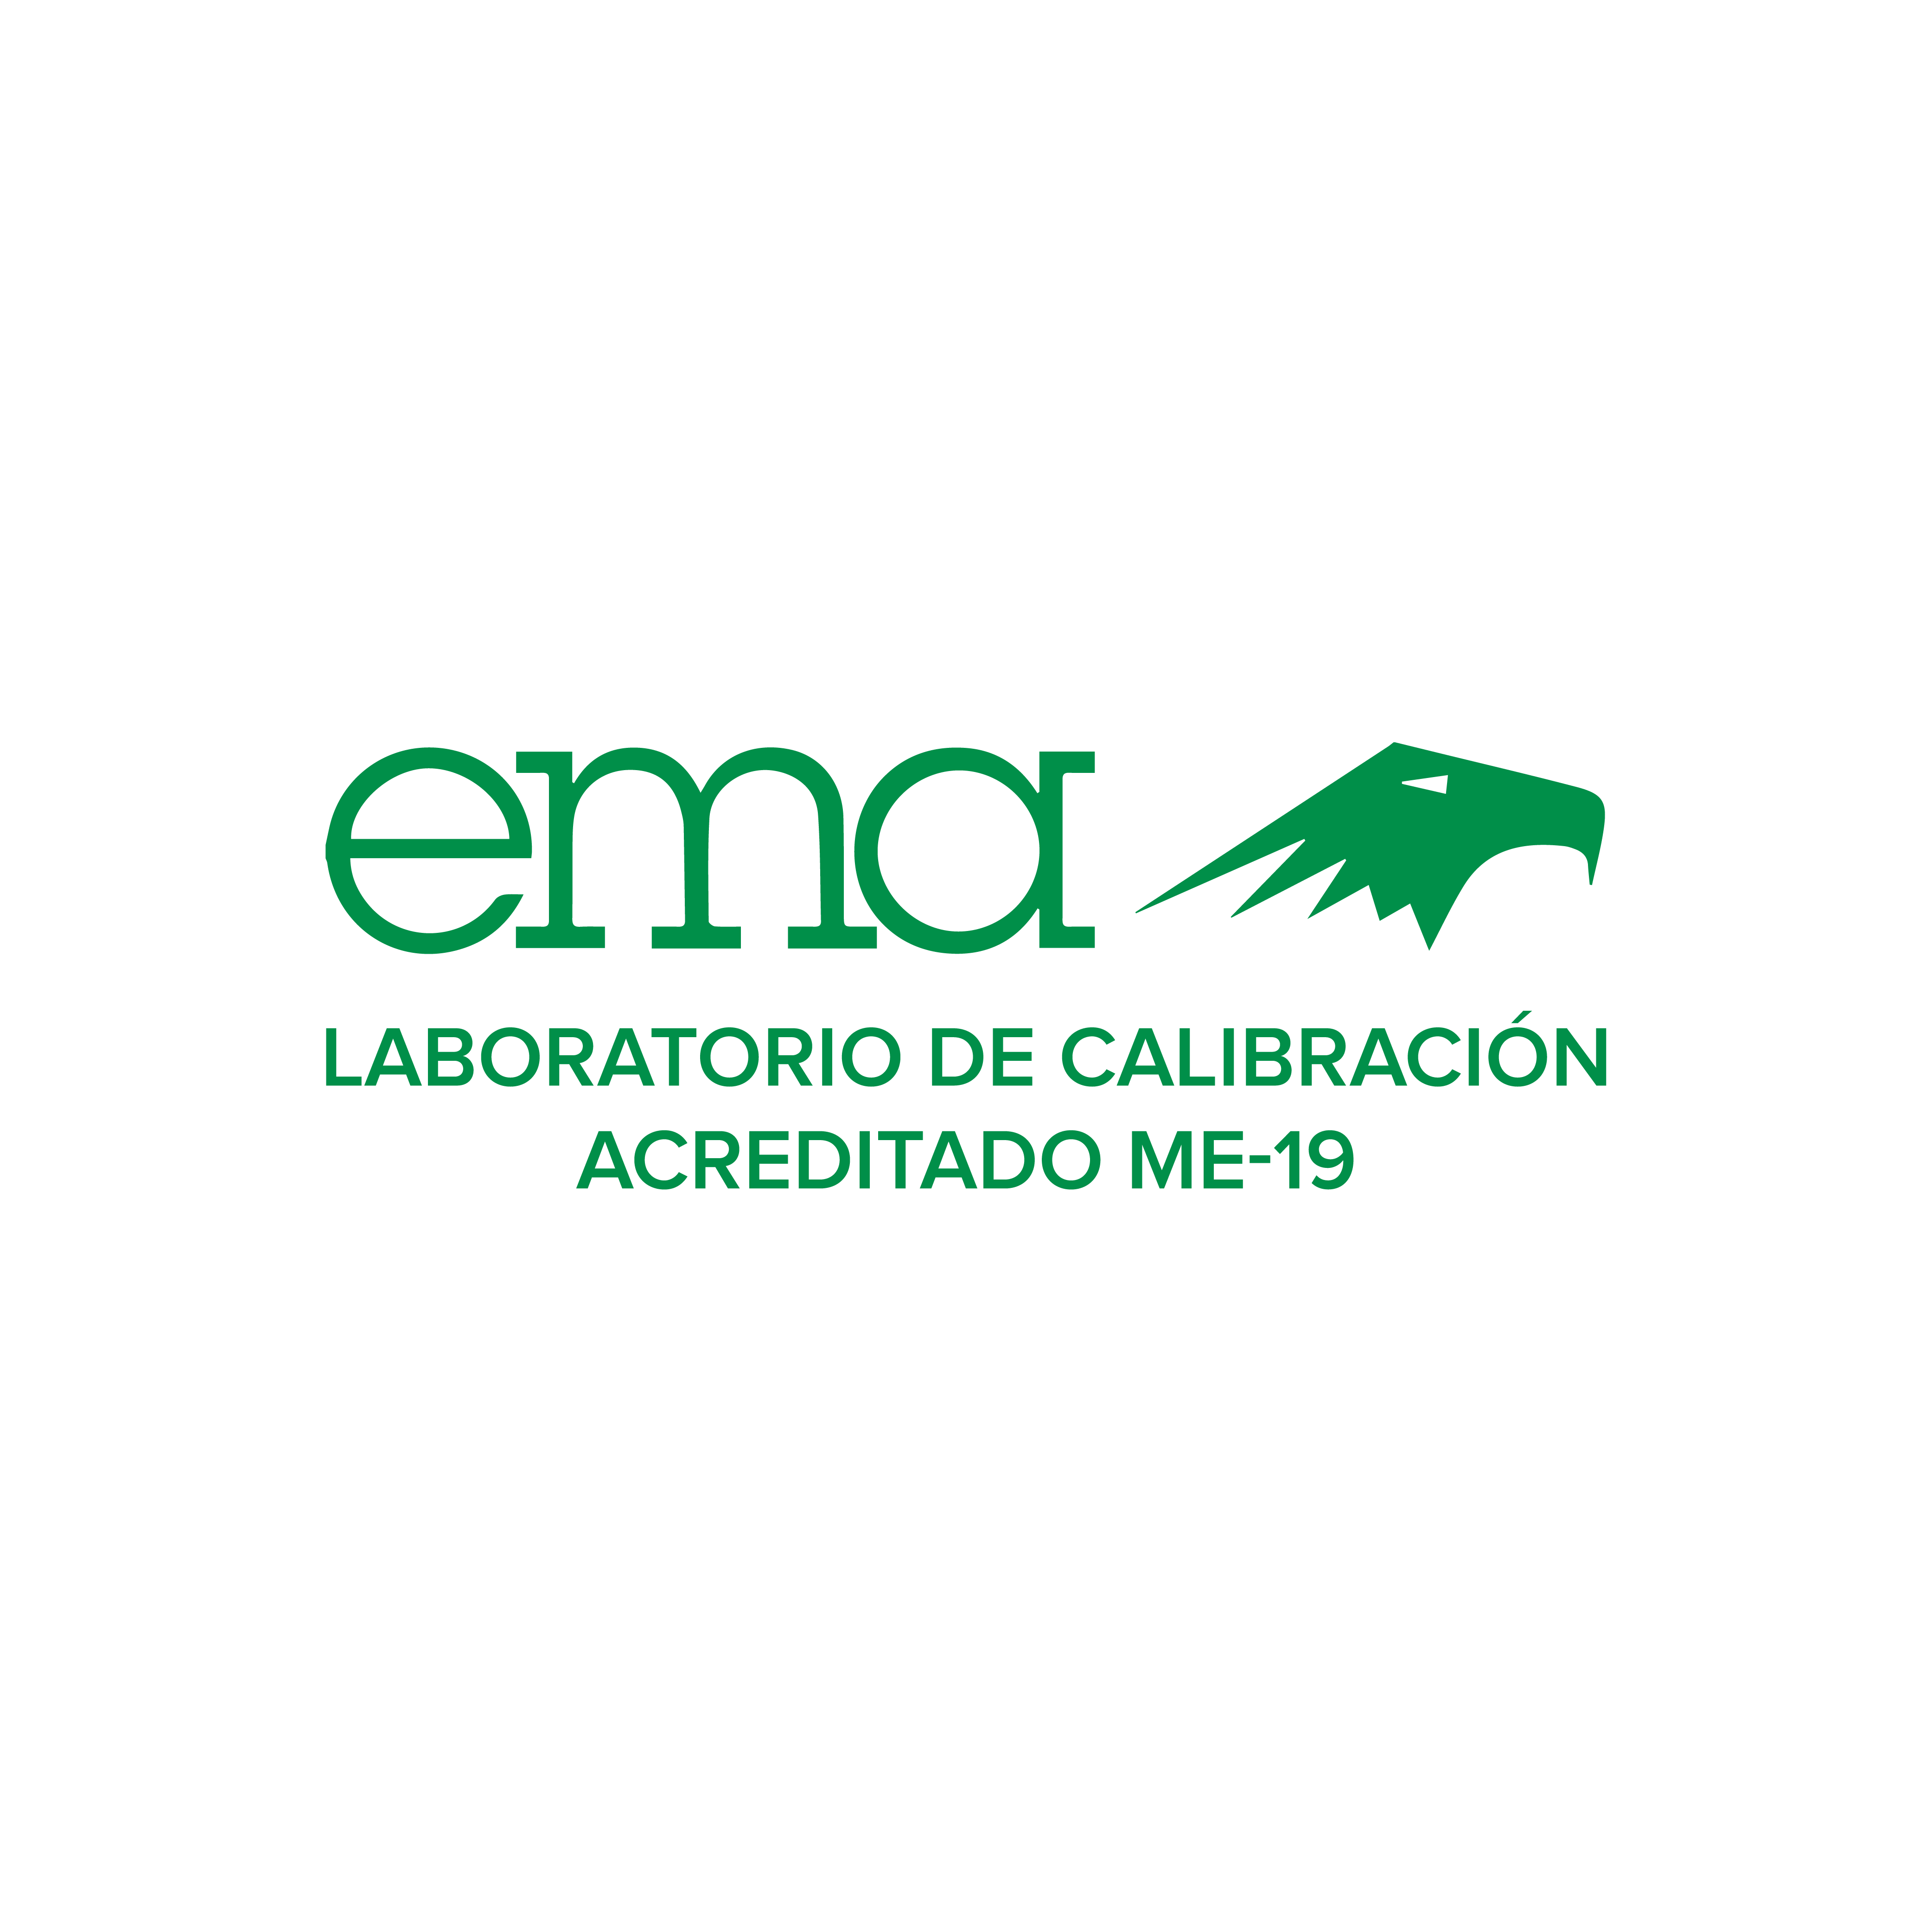 ¡CTR Scientific Certificado EMA ME-19!